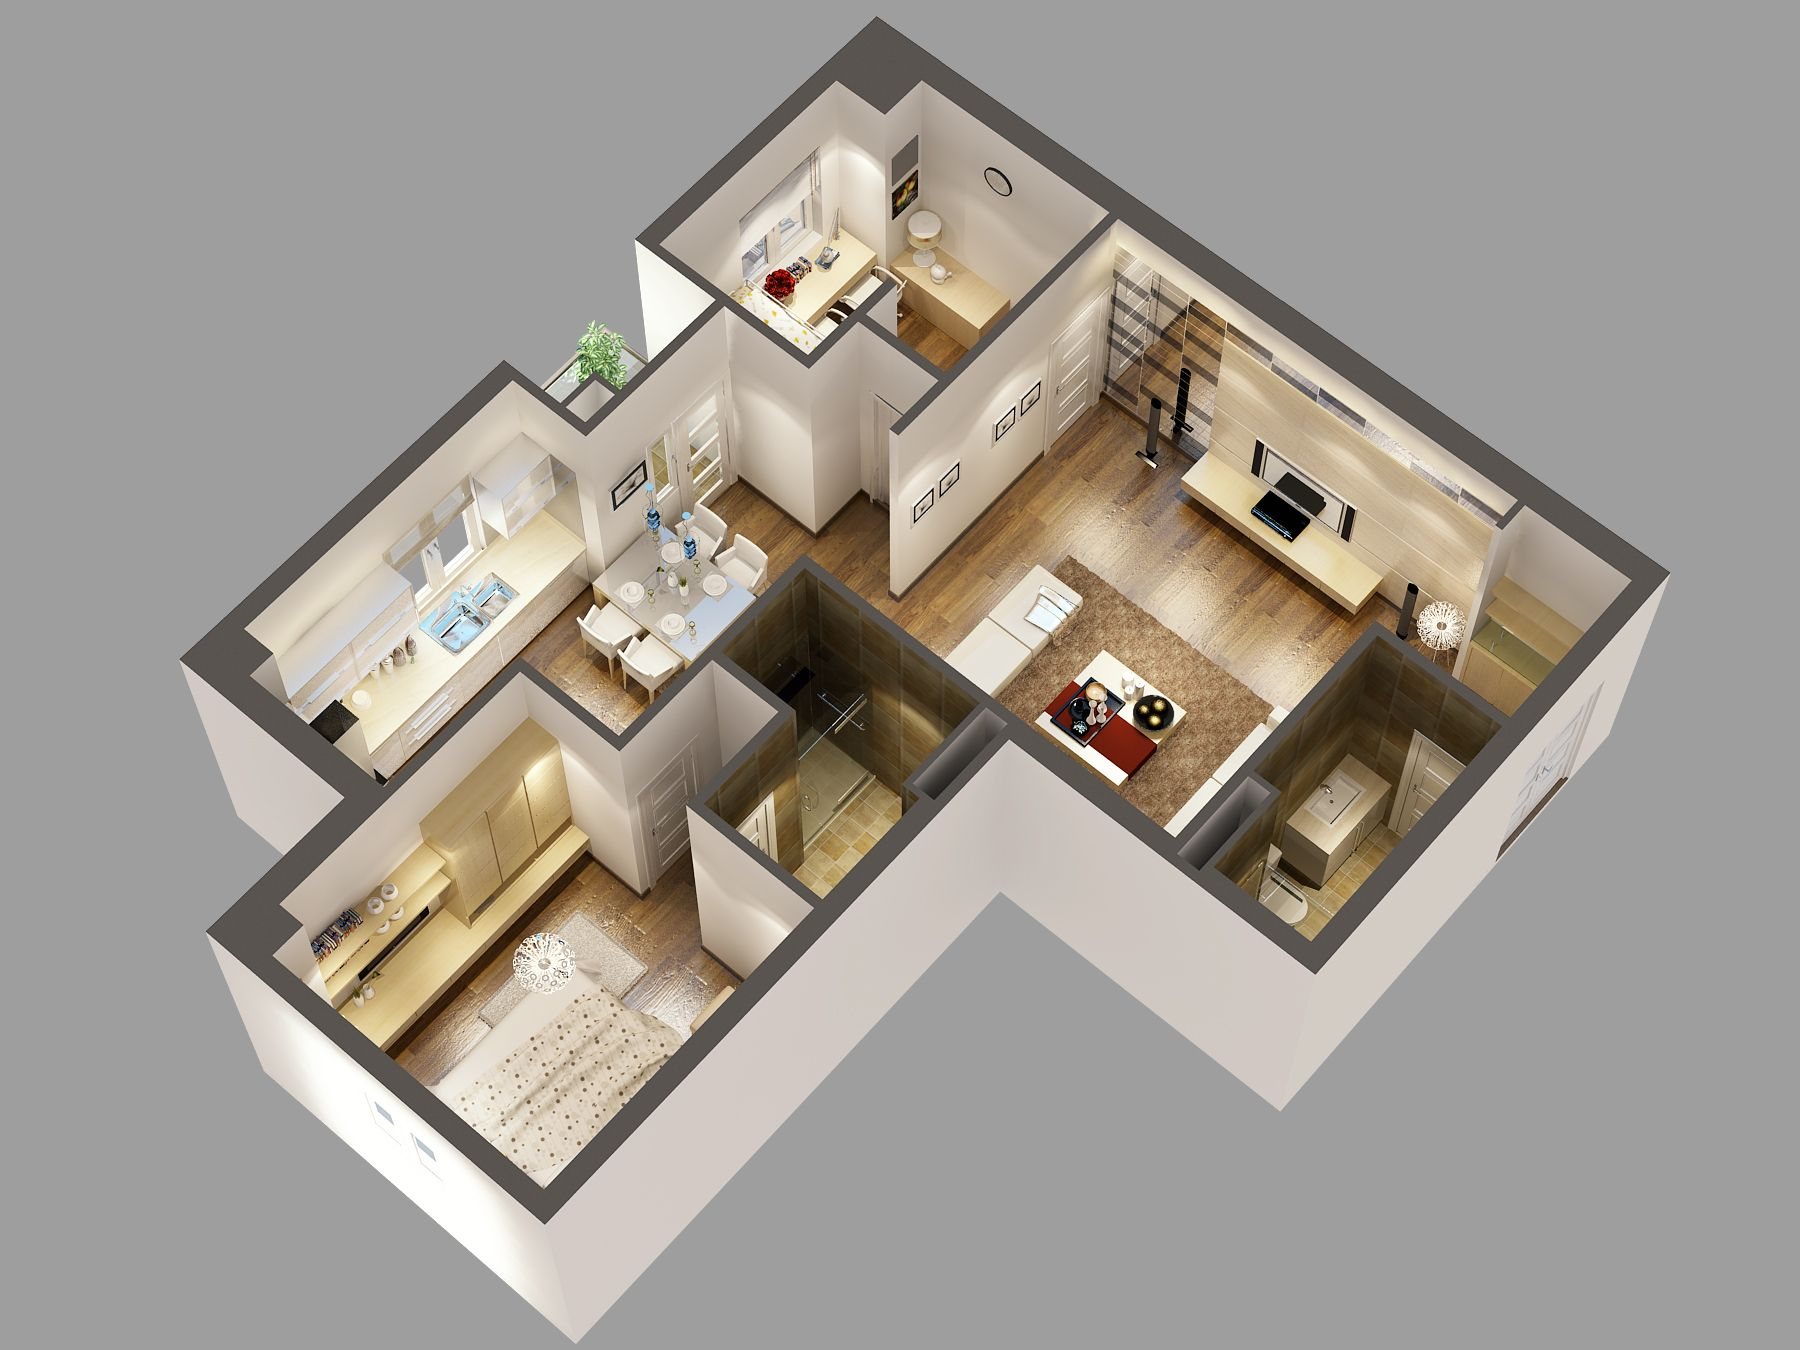 3d Floor Plan Software Free With Awesome Modern Interior Design With Laminate Floooring For 3 3d Home Design Software Room Design Software Home Design Software